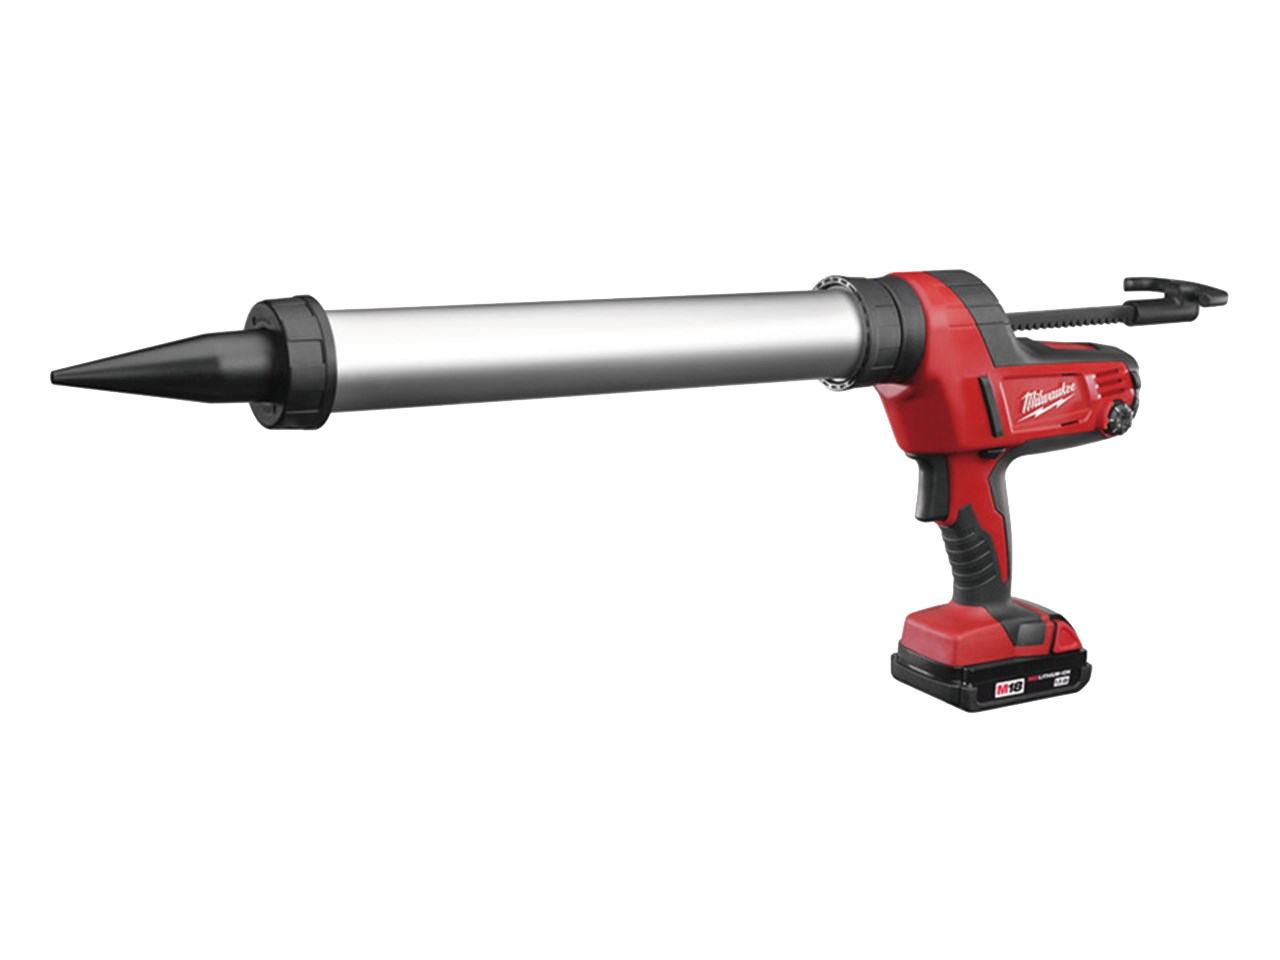 Milwaukee C18pcg600a 201b 600ml Aluminium 18v Caulking Gun